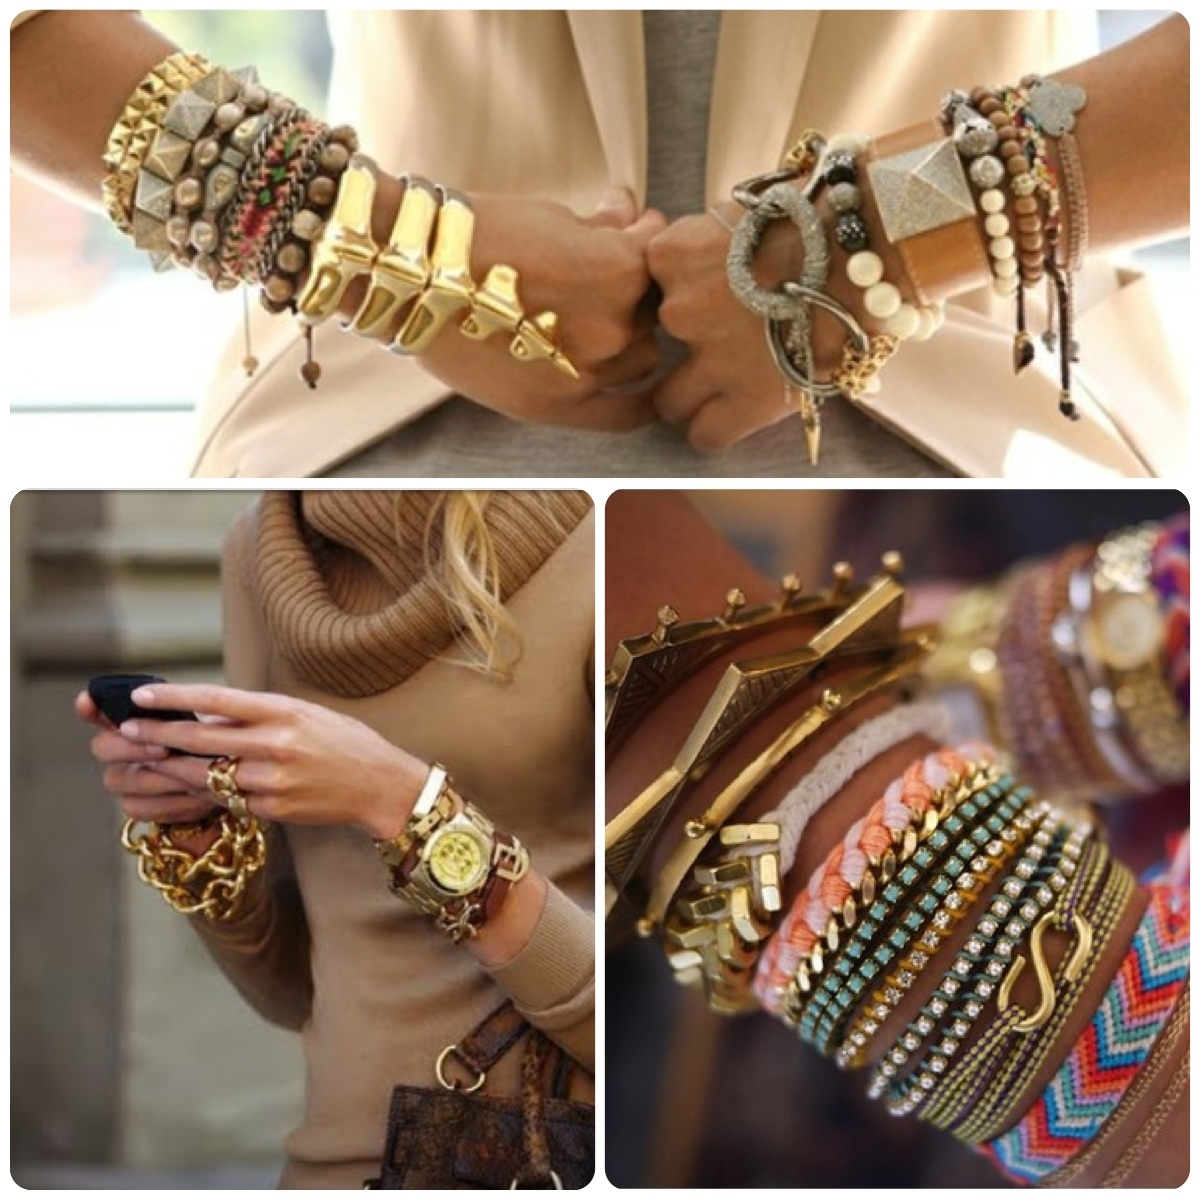 38 Must Have DIY Fashion Accessories - Homemade Home Ideas 50